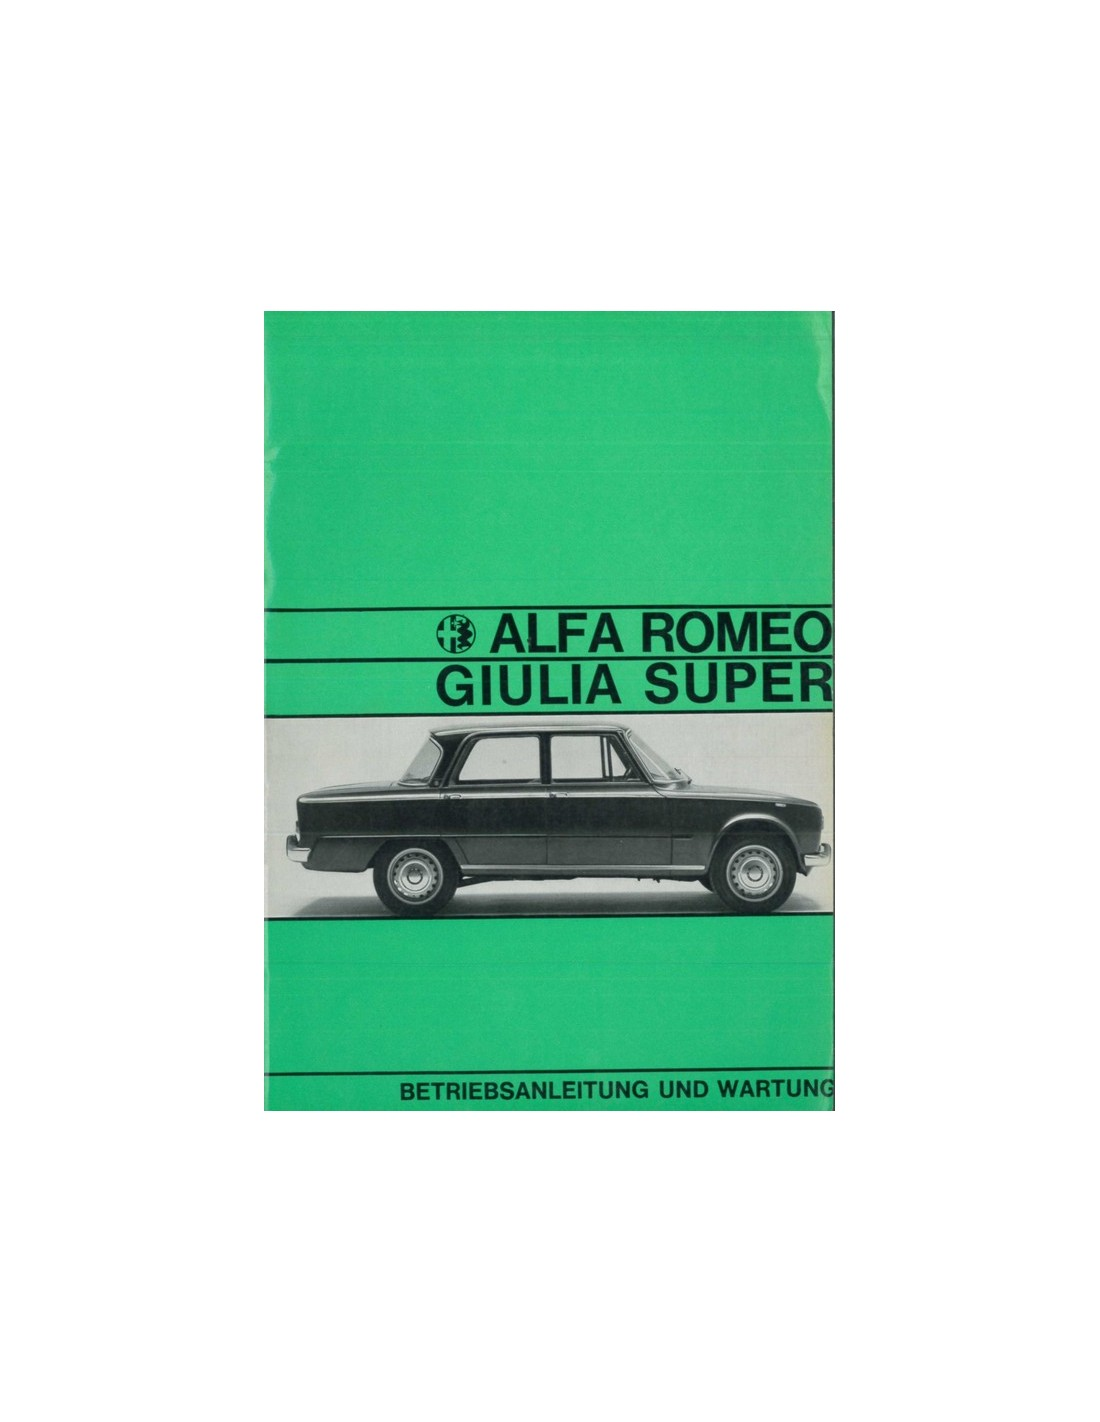 1967 ALFA ROMEO GIULIA 1600 SUPER OWNER'S MANUAL HANDBOOK